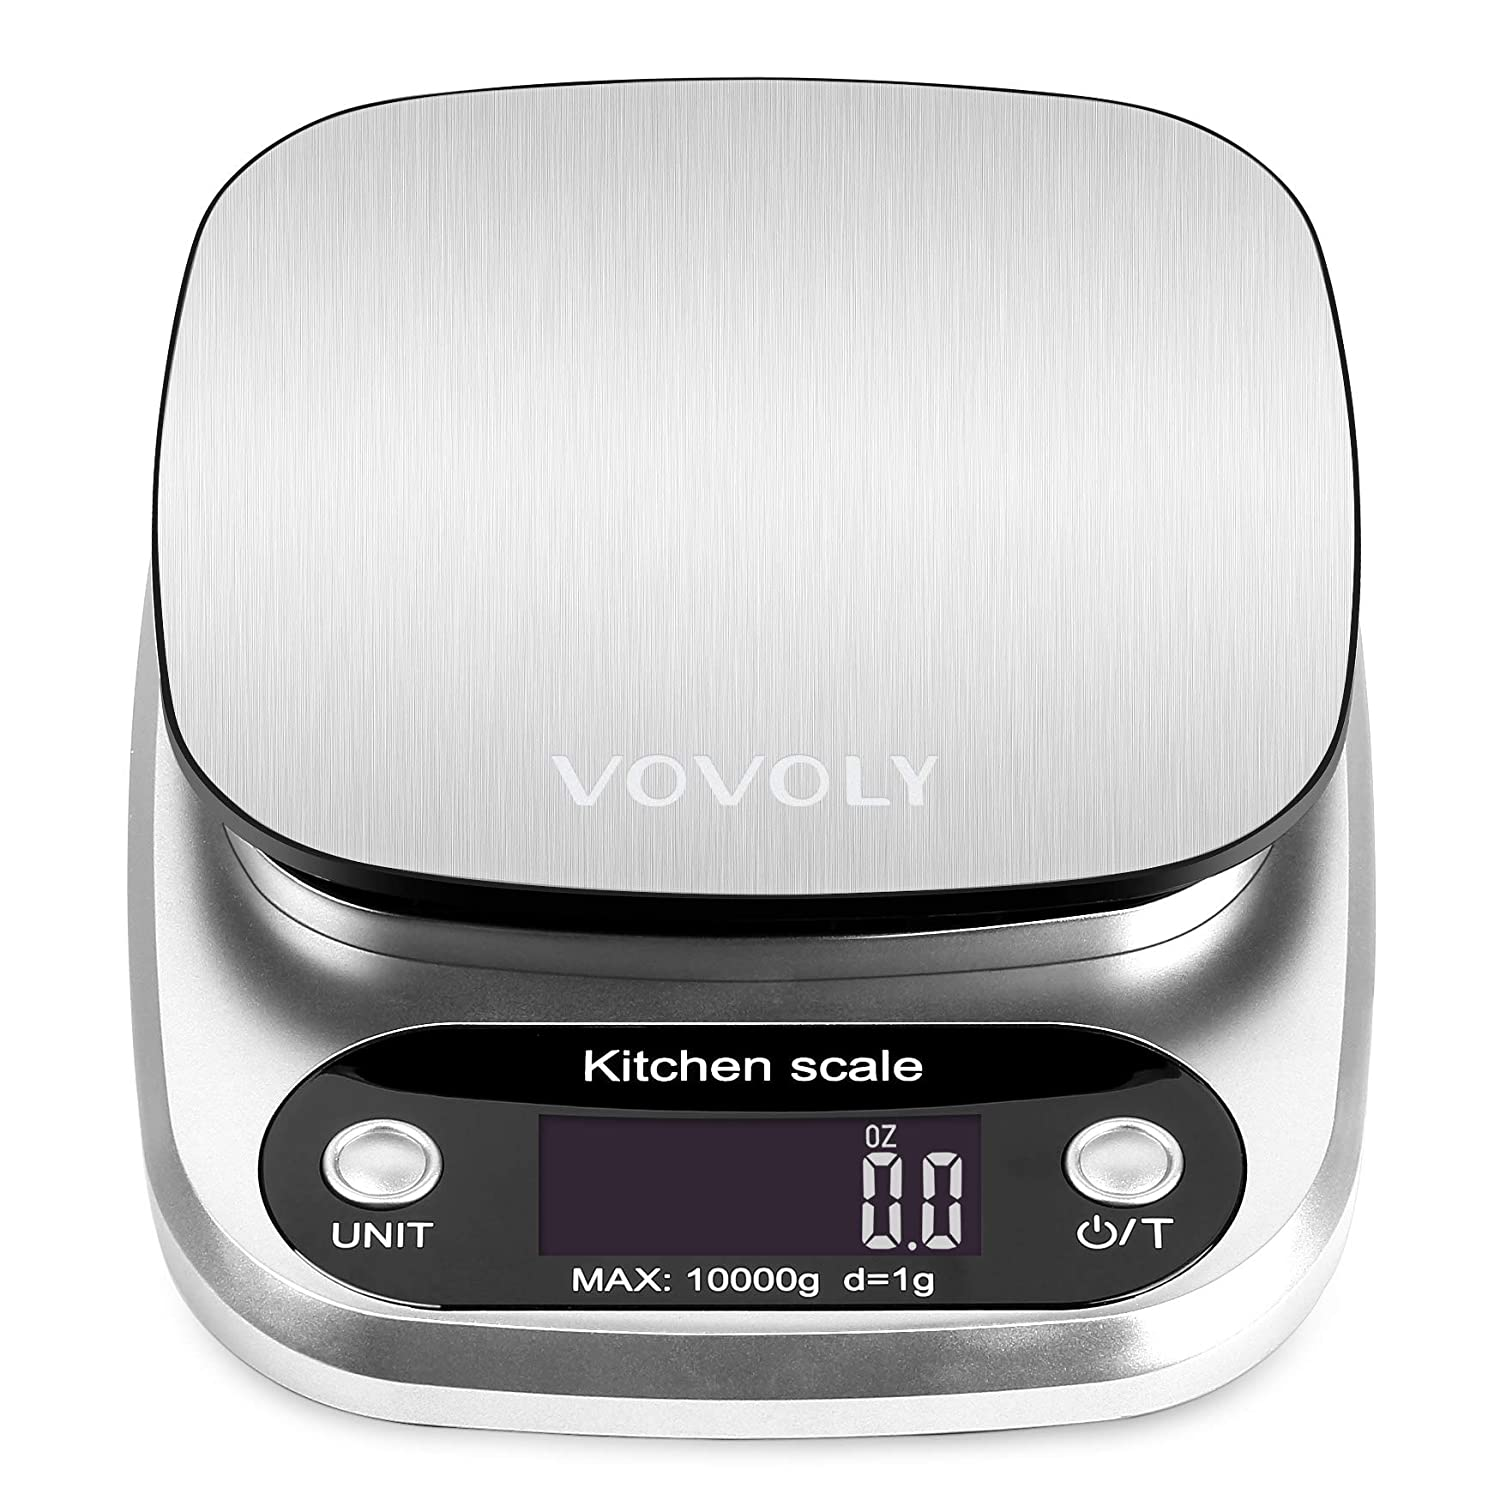 Vovoly Digital Food Scale Kitchen Scale, Food Scales Digital Weight Grams and OZ, 22lb/10kg and 1g/0.1oz Scale for Food , Food Weight Scale for Baking ,Cooking with Stainless Steel Platform (Silver)